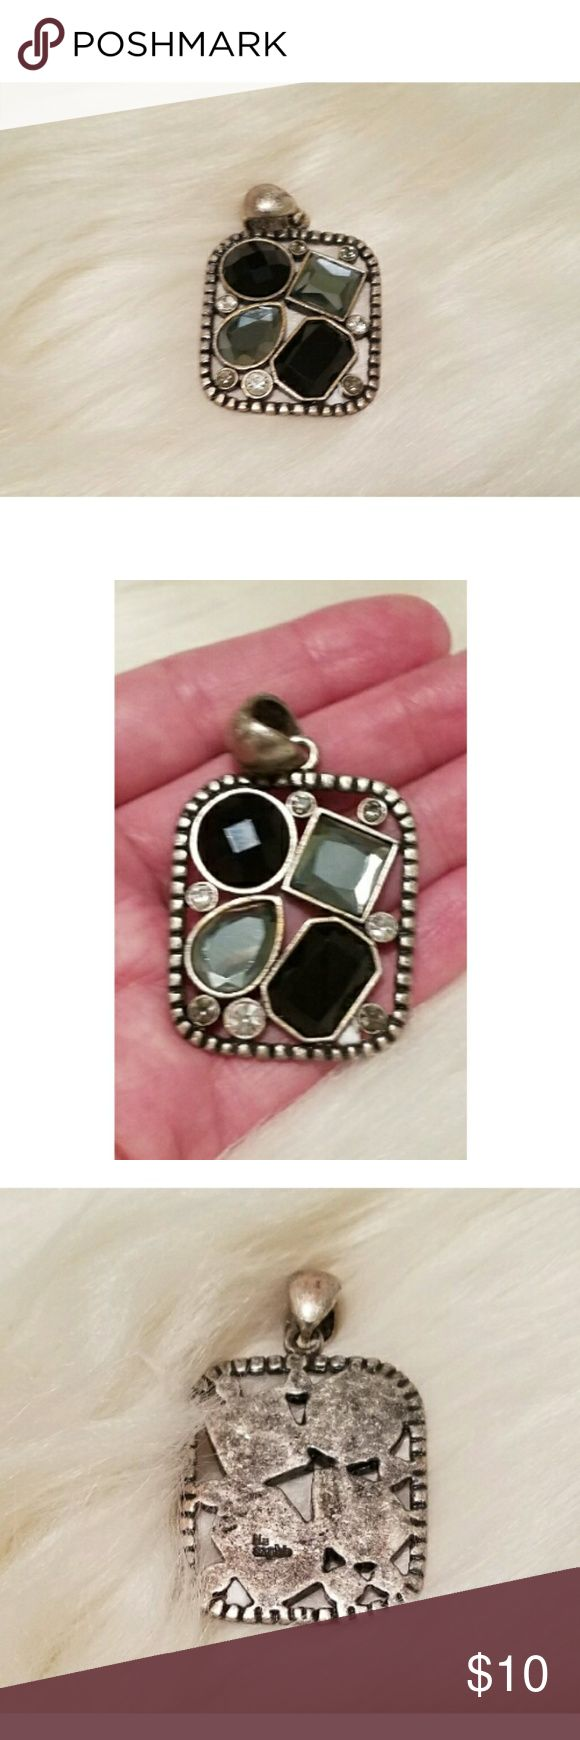 EUC Lia Sophia pendant black gray and cz This is a very pretty black gray and cz pendant by Lia Sophia. The silver tone has a weathered look to it. 2 in. long. Lia Sophia Jewelry